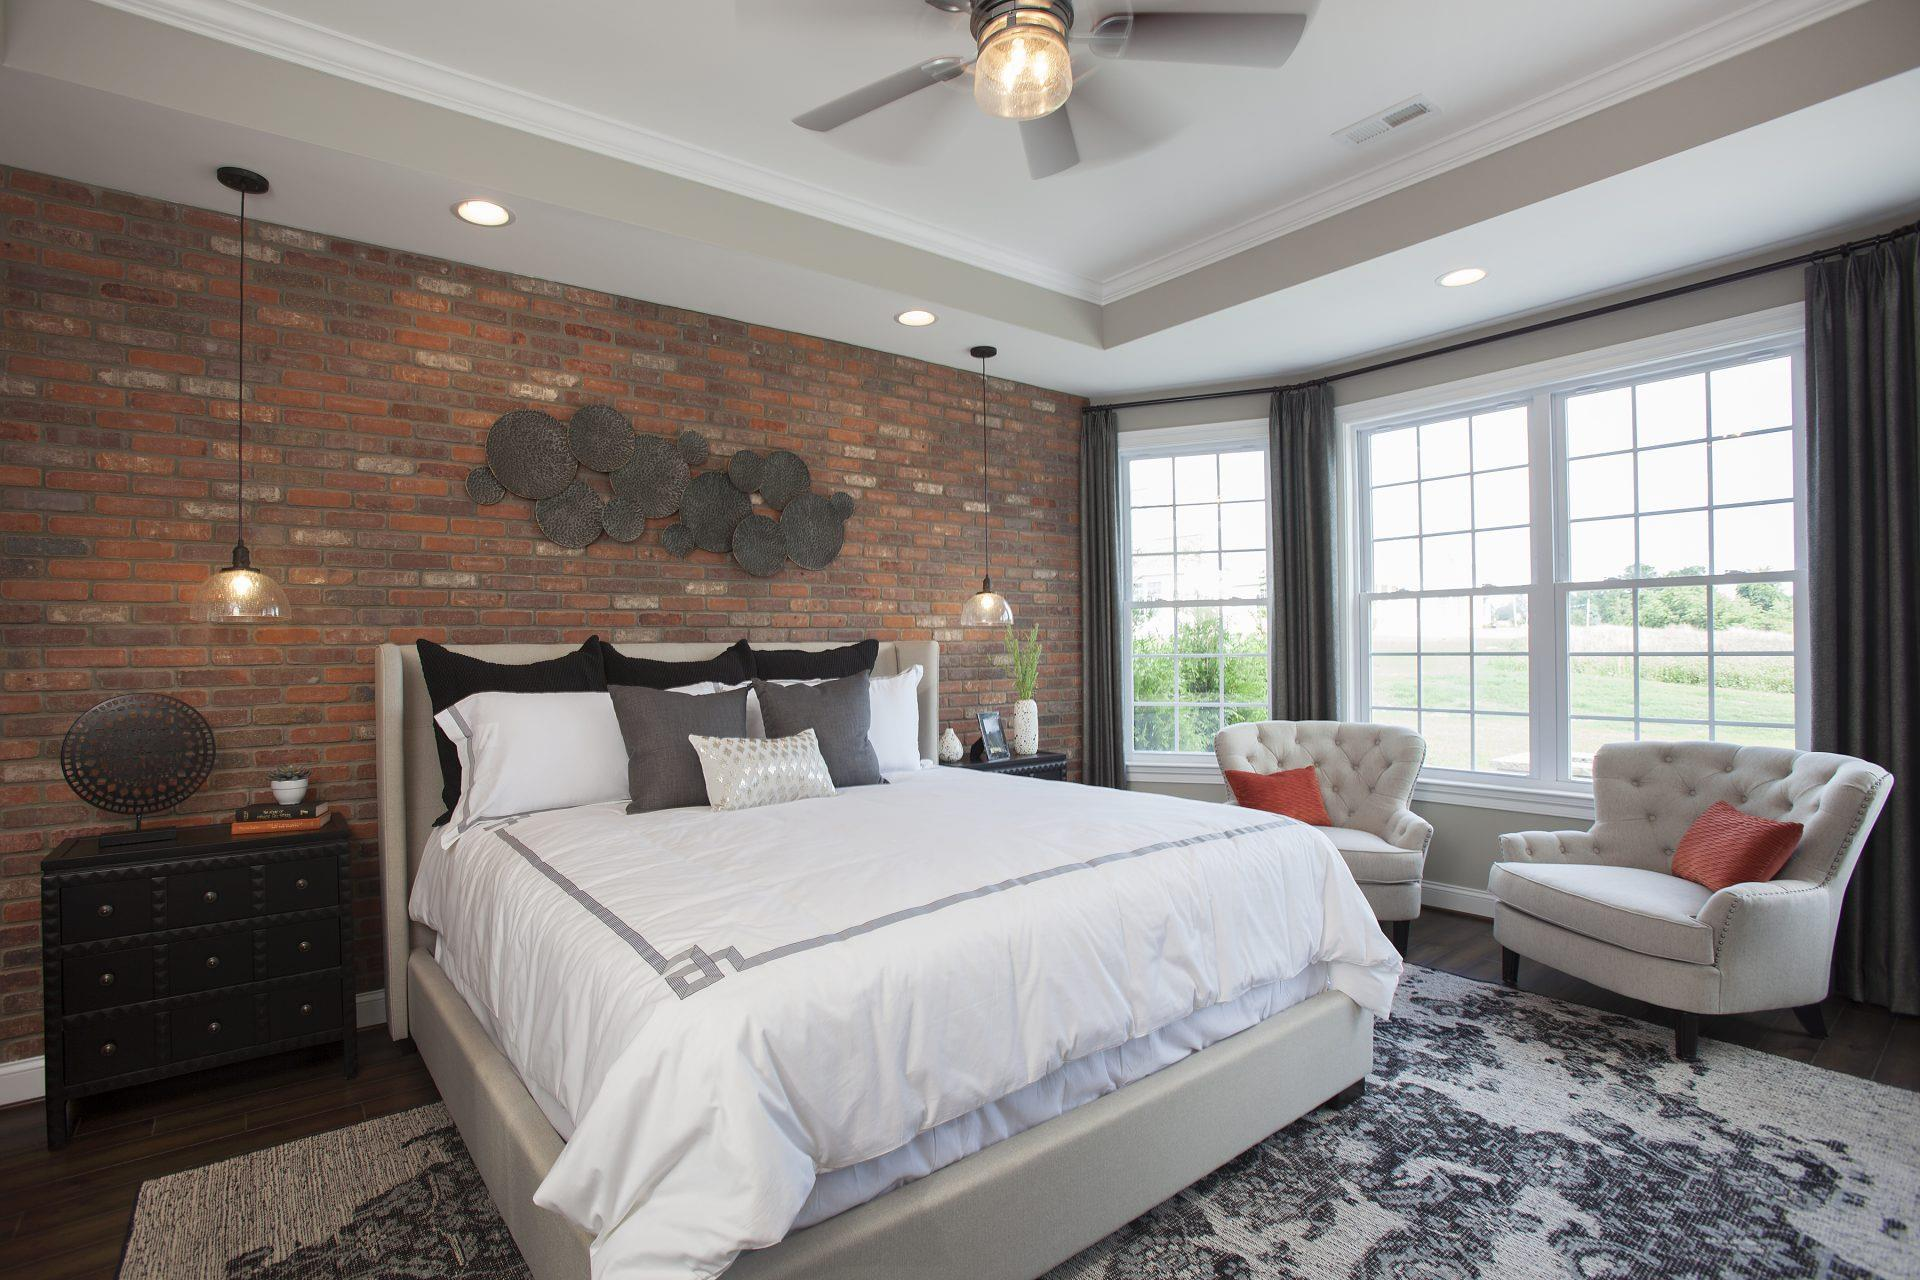 Bedroom featured in The Franklin - Pinnacle By Traditions of America in Allentown-Bethlehem, PA